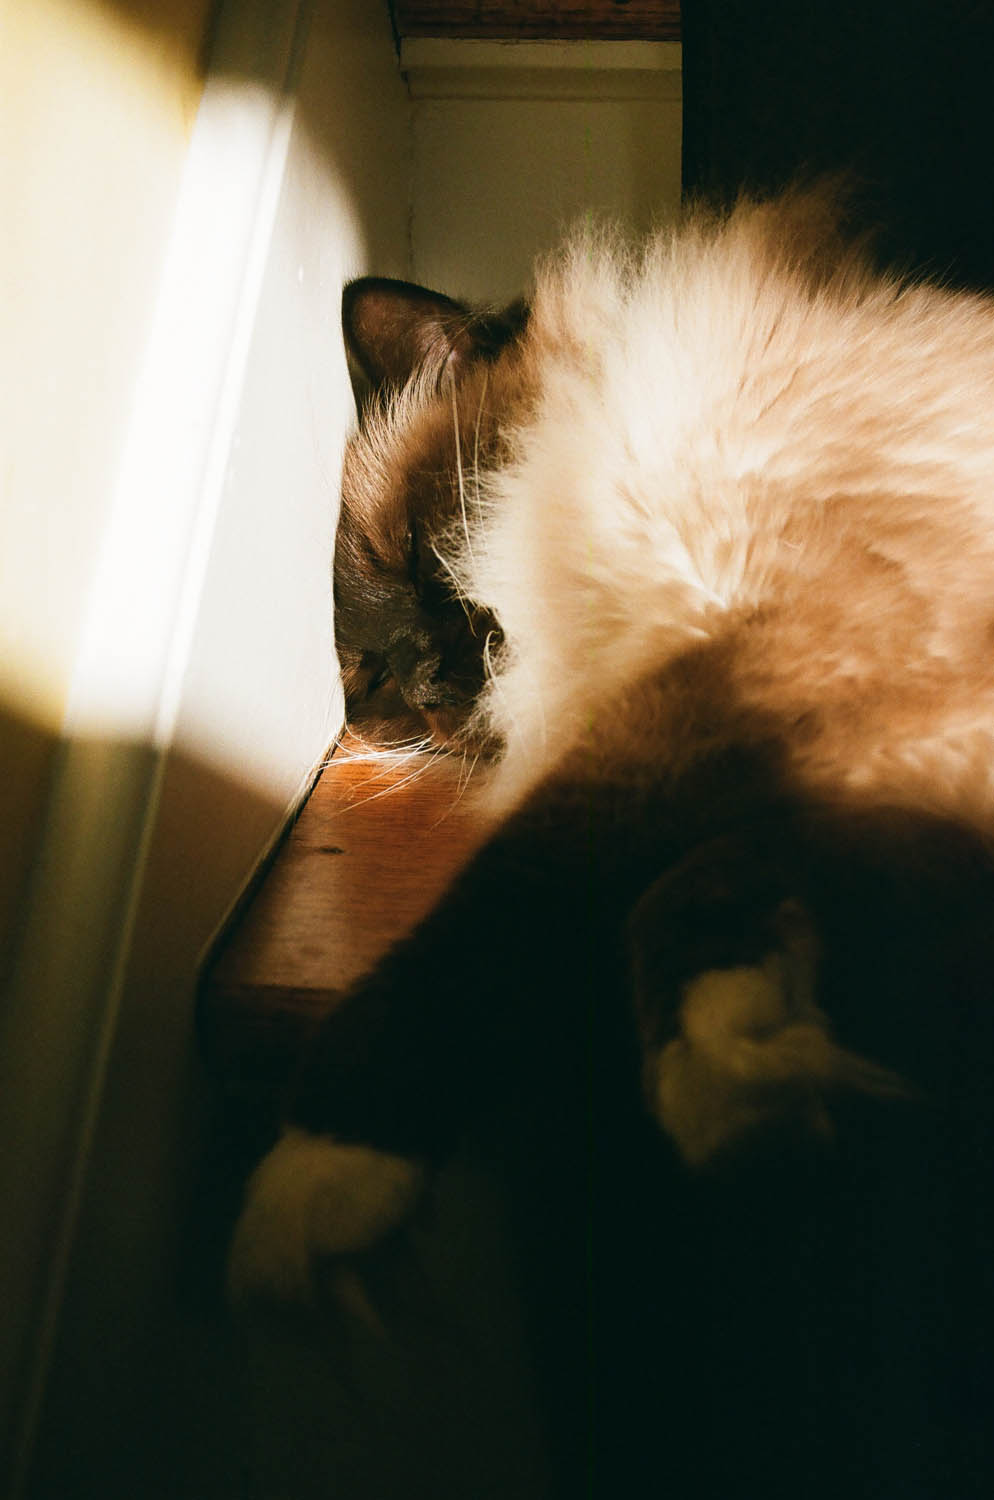 Nanaimo the cat gets some morning rays of sunlight